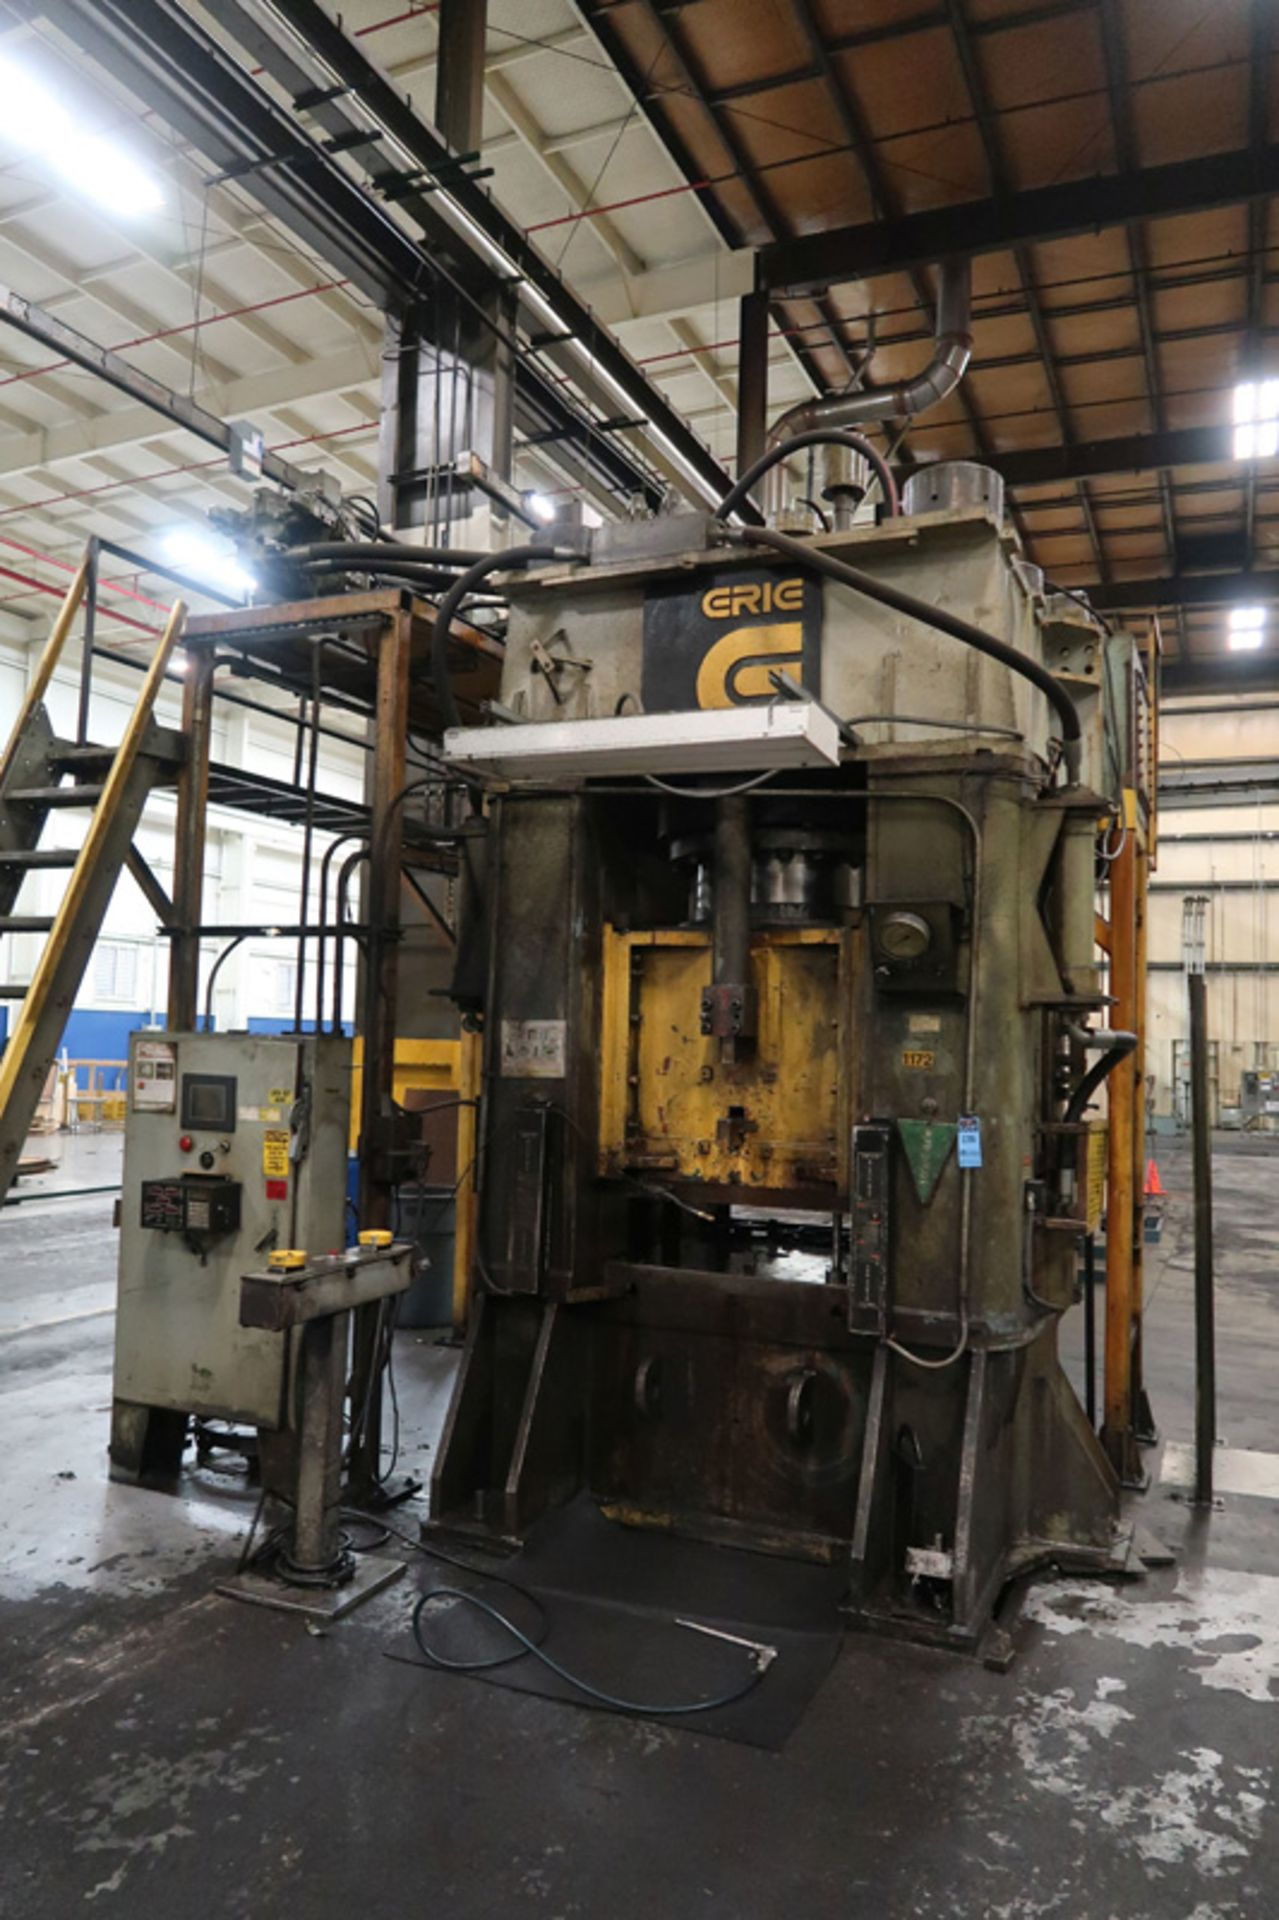 "Lot 21 - 1979 Erie Straight Side Hydraulic Press | 1,000-Ton x 42"" x 42"", Mdl: #1000, S/N: 29-1369 - 8373P"